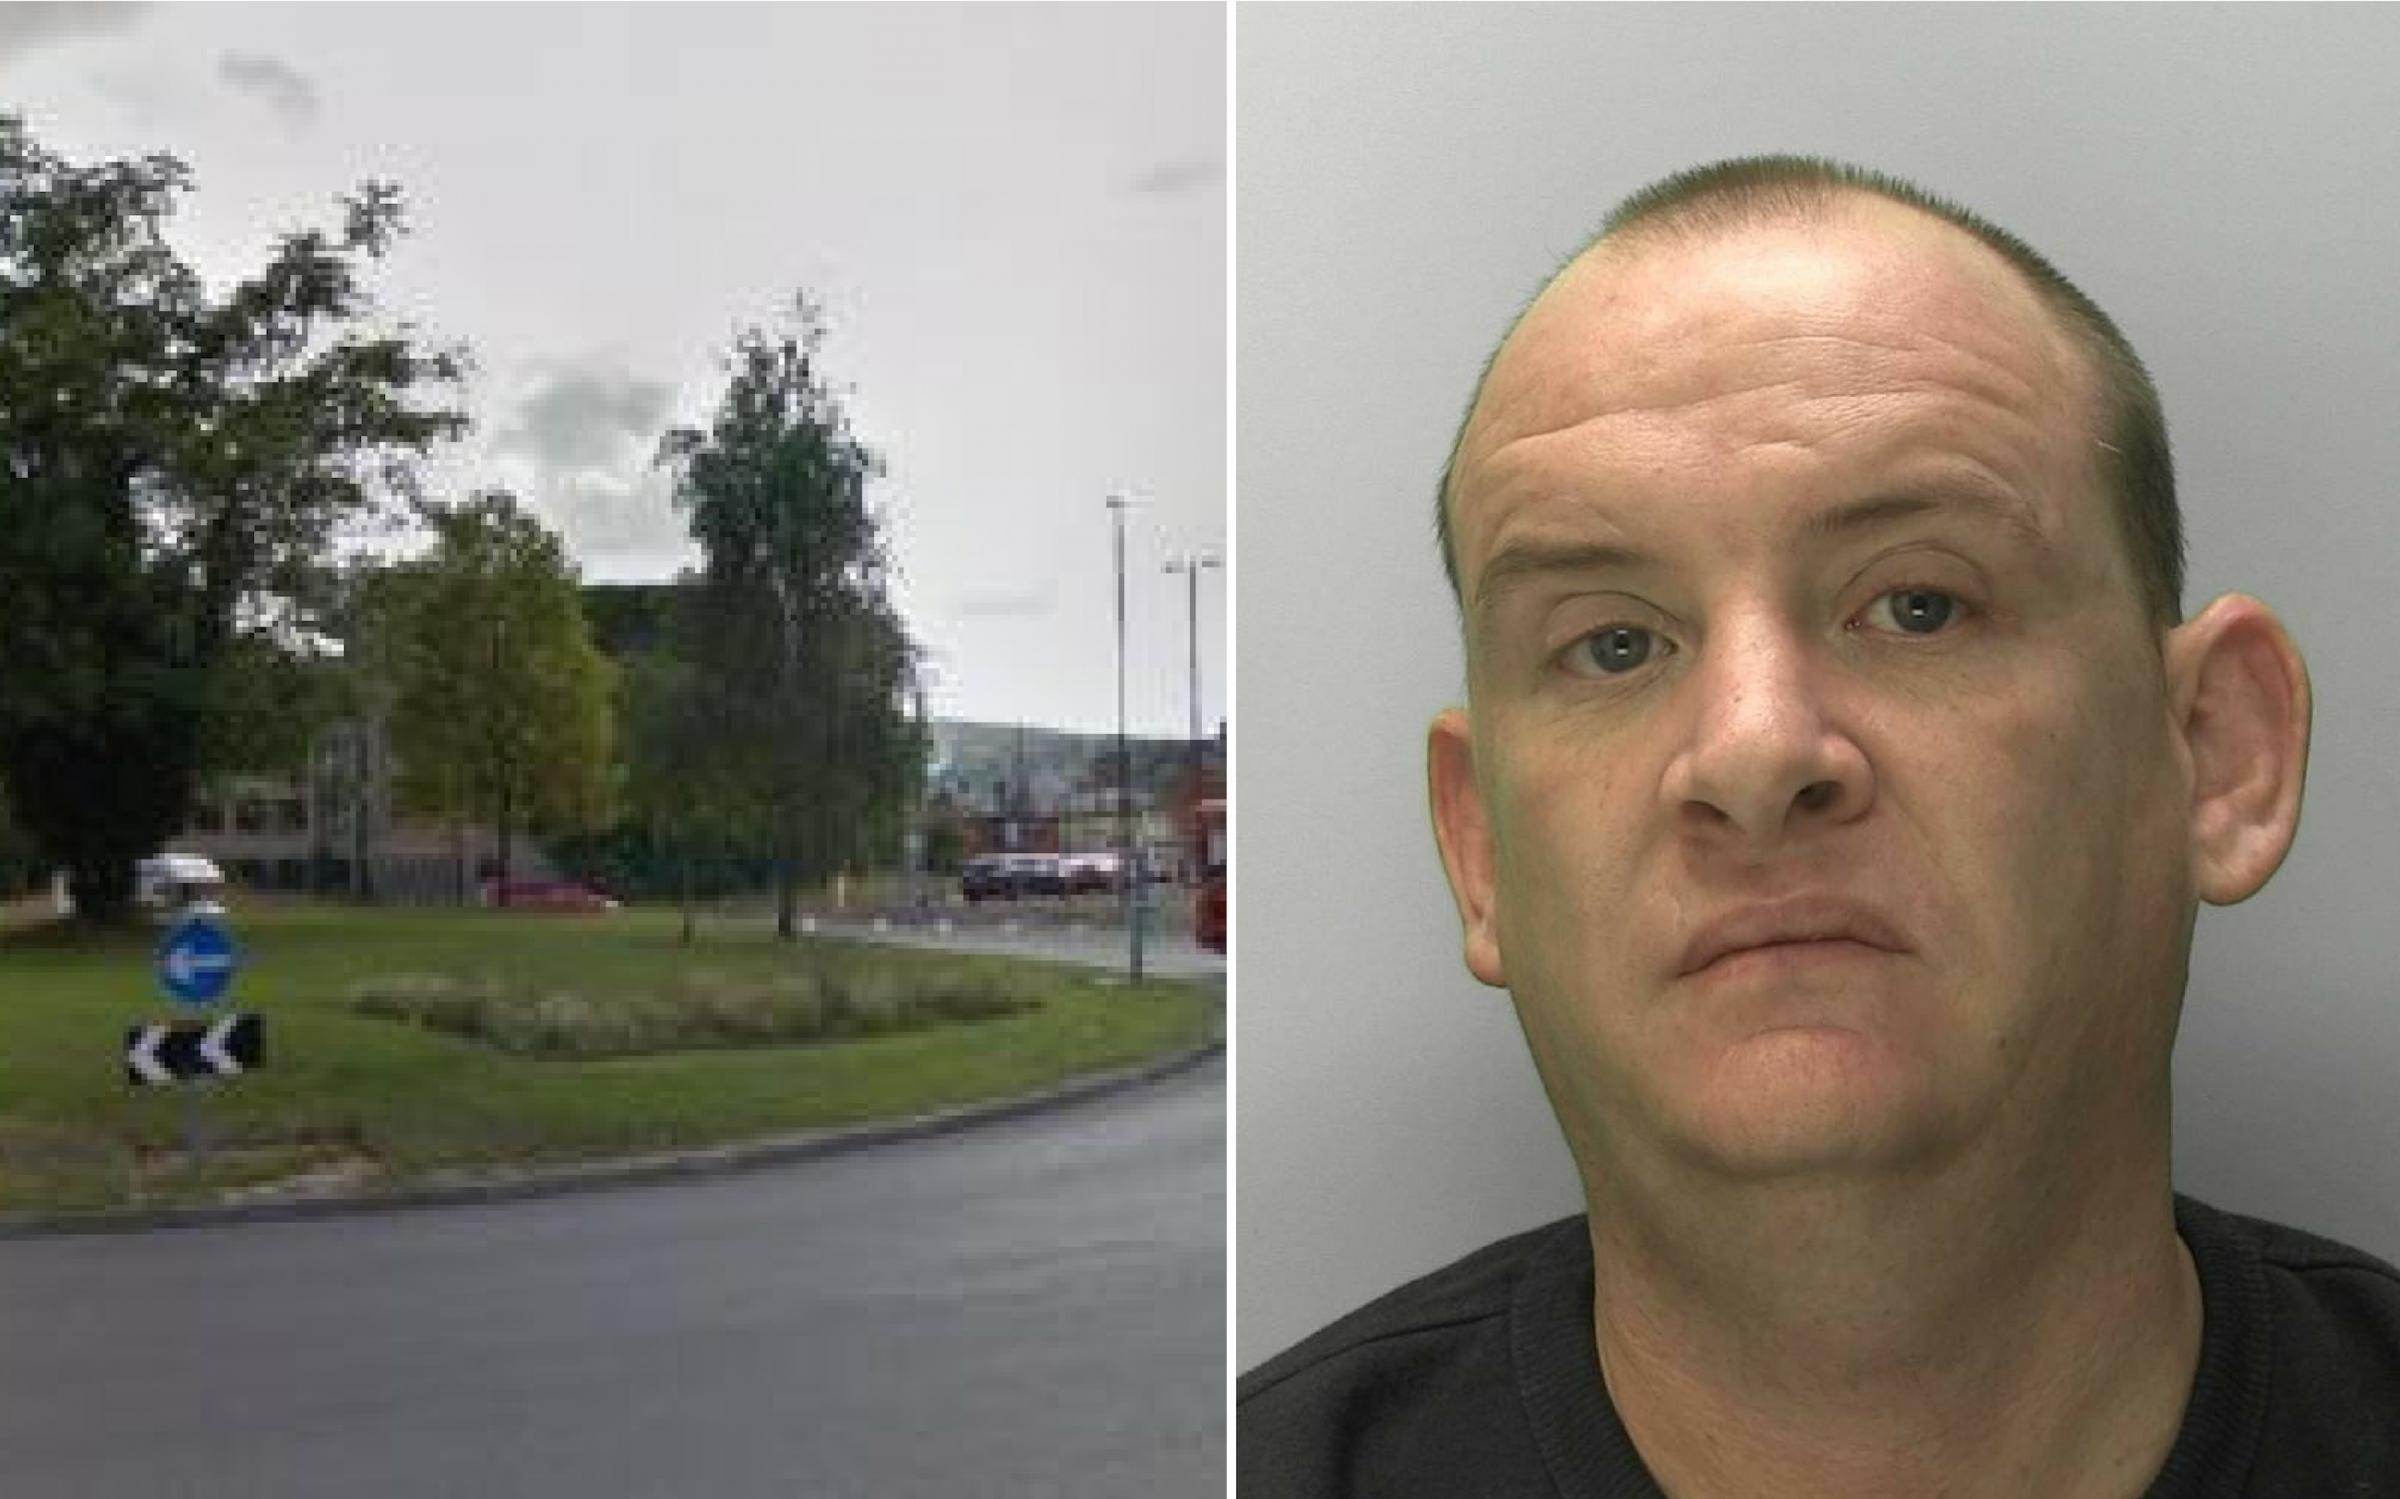 Mark Bainbridge has been jailed for 52 months after being found with £25,000 worth of drugs when police stopped him on Cainscross roundabout in September